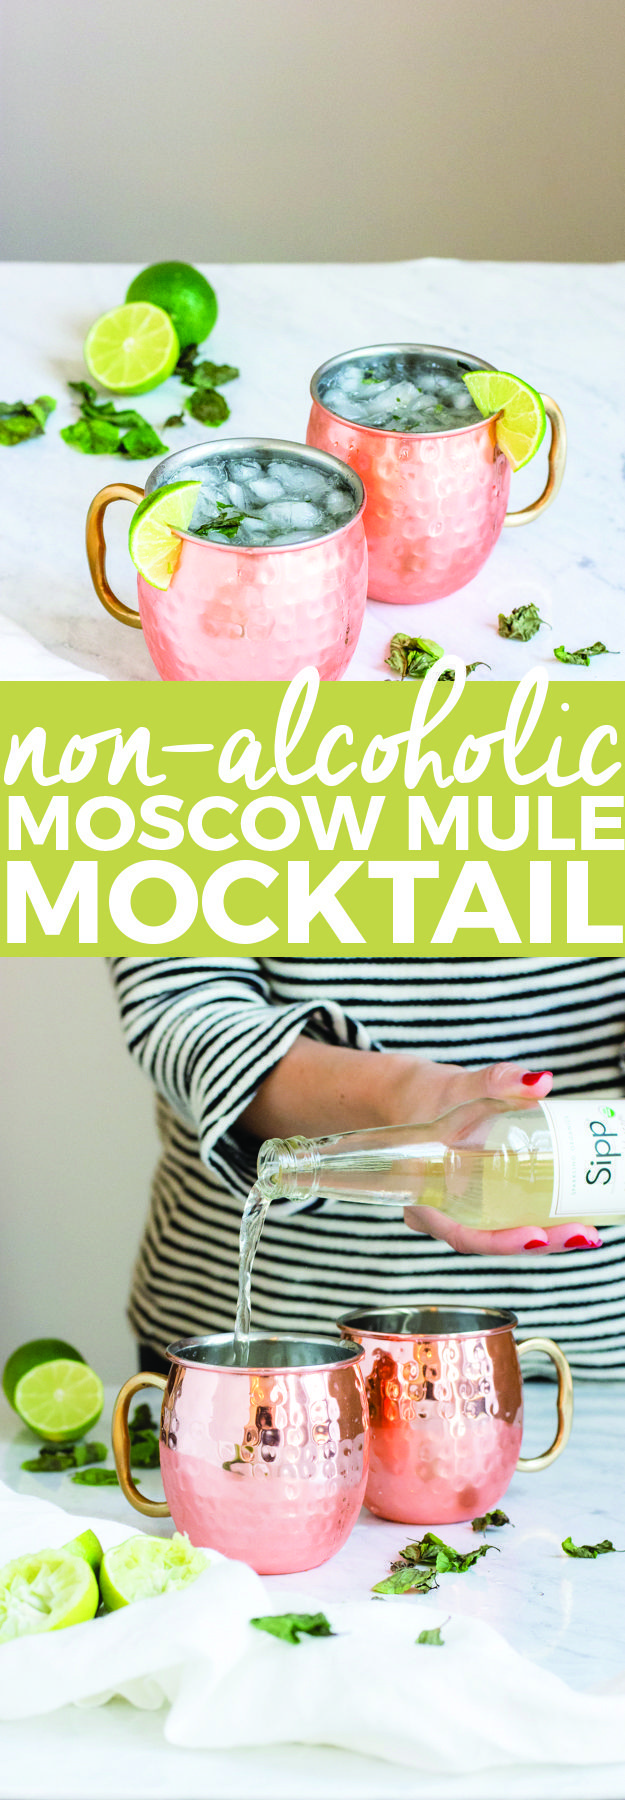 Non-Alcoholic Moscow Mule Mocktail #summeralcoholicdrinks